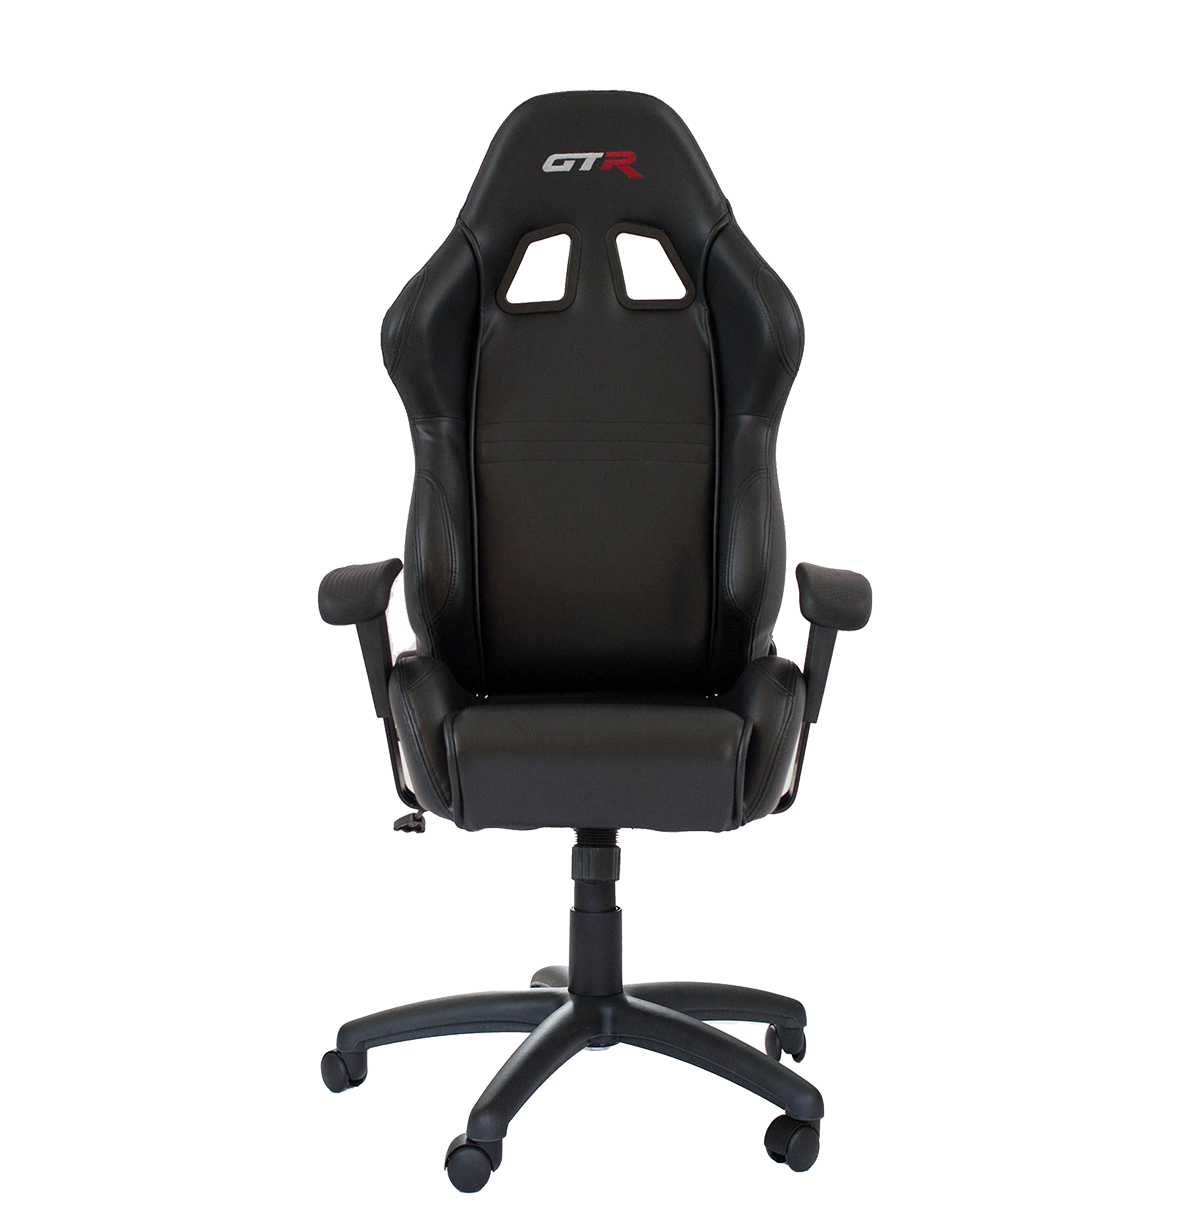 large size big and tall computer chair gaming chair high back ergonomic leatherette racing. Black Bedroom Furniture Sets. Home Design Ideas